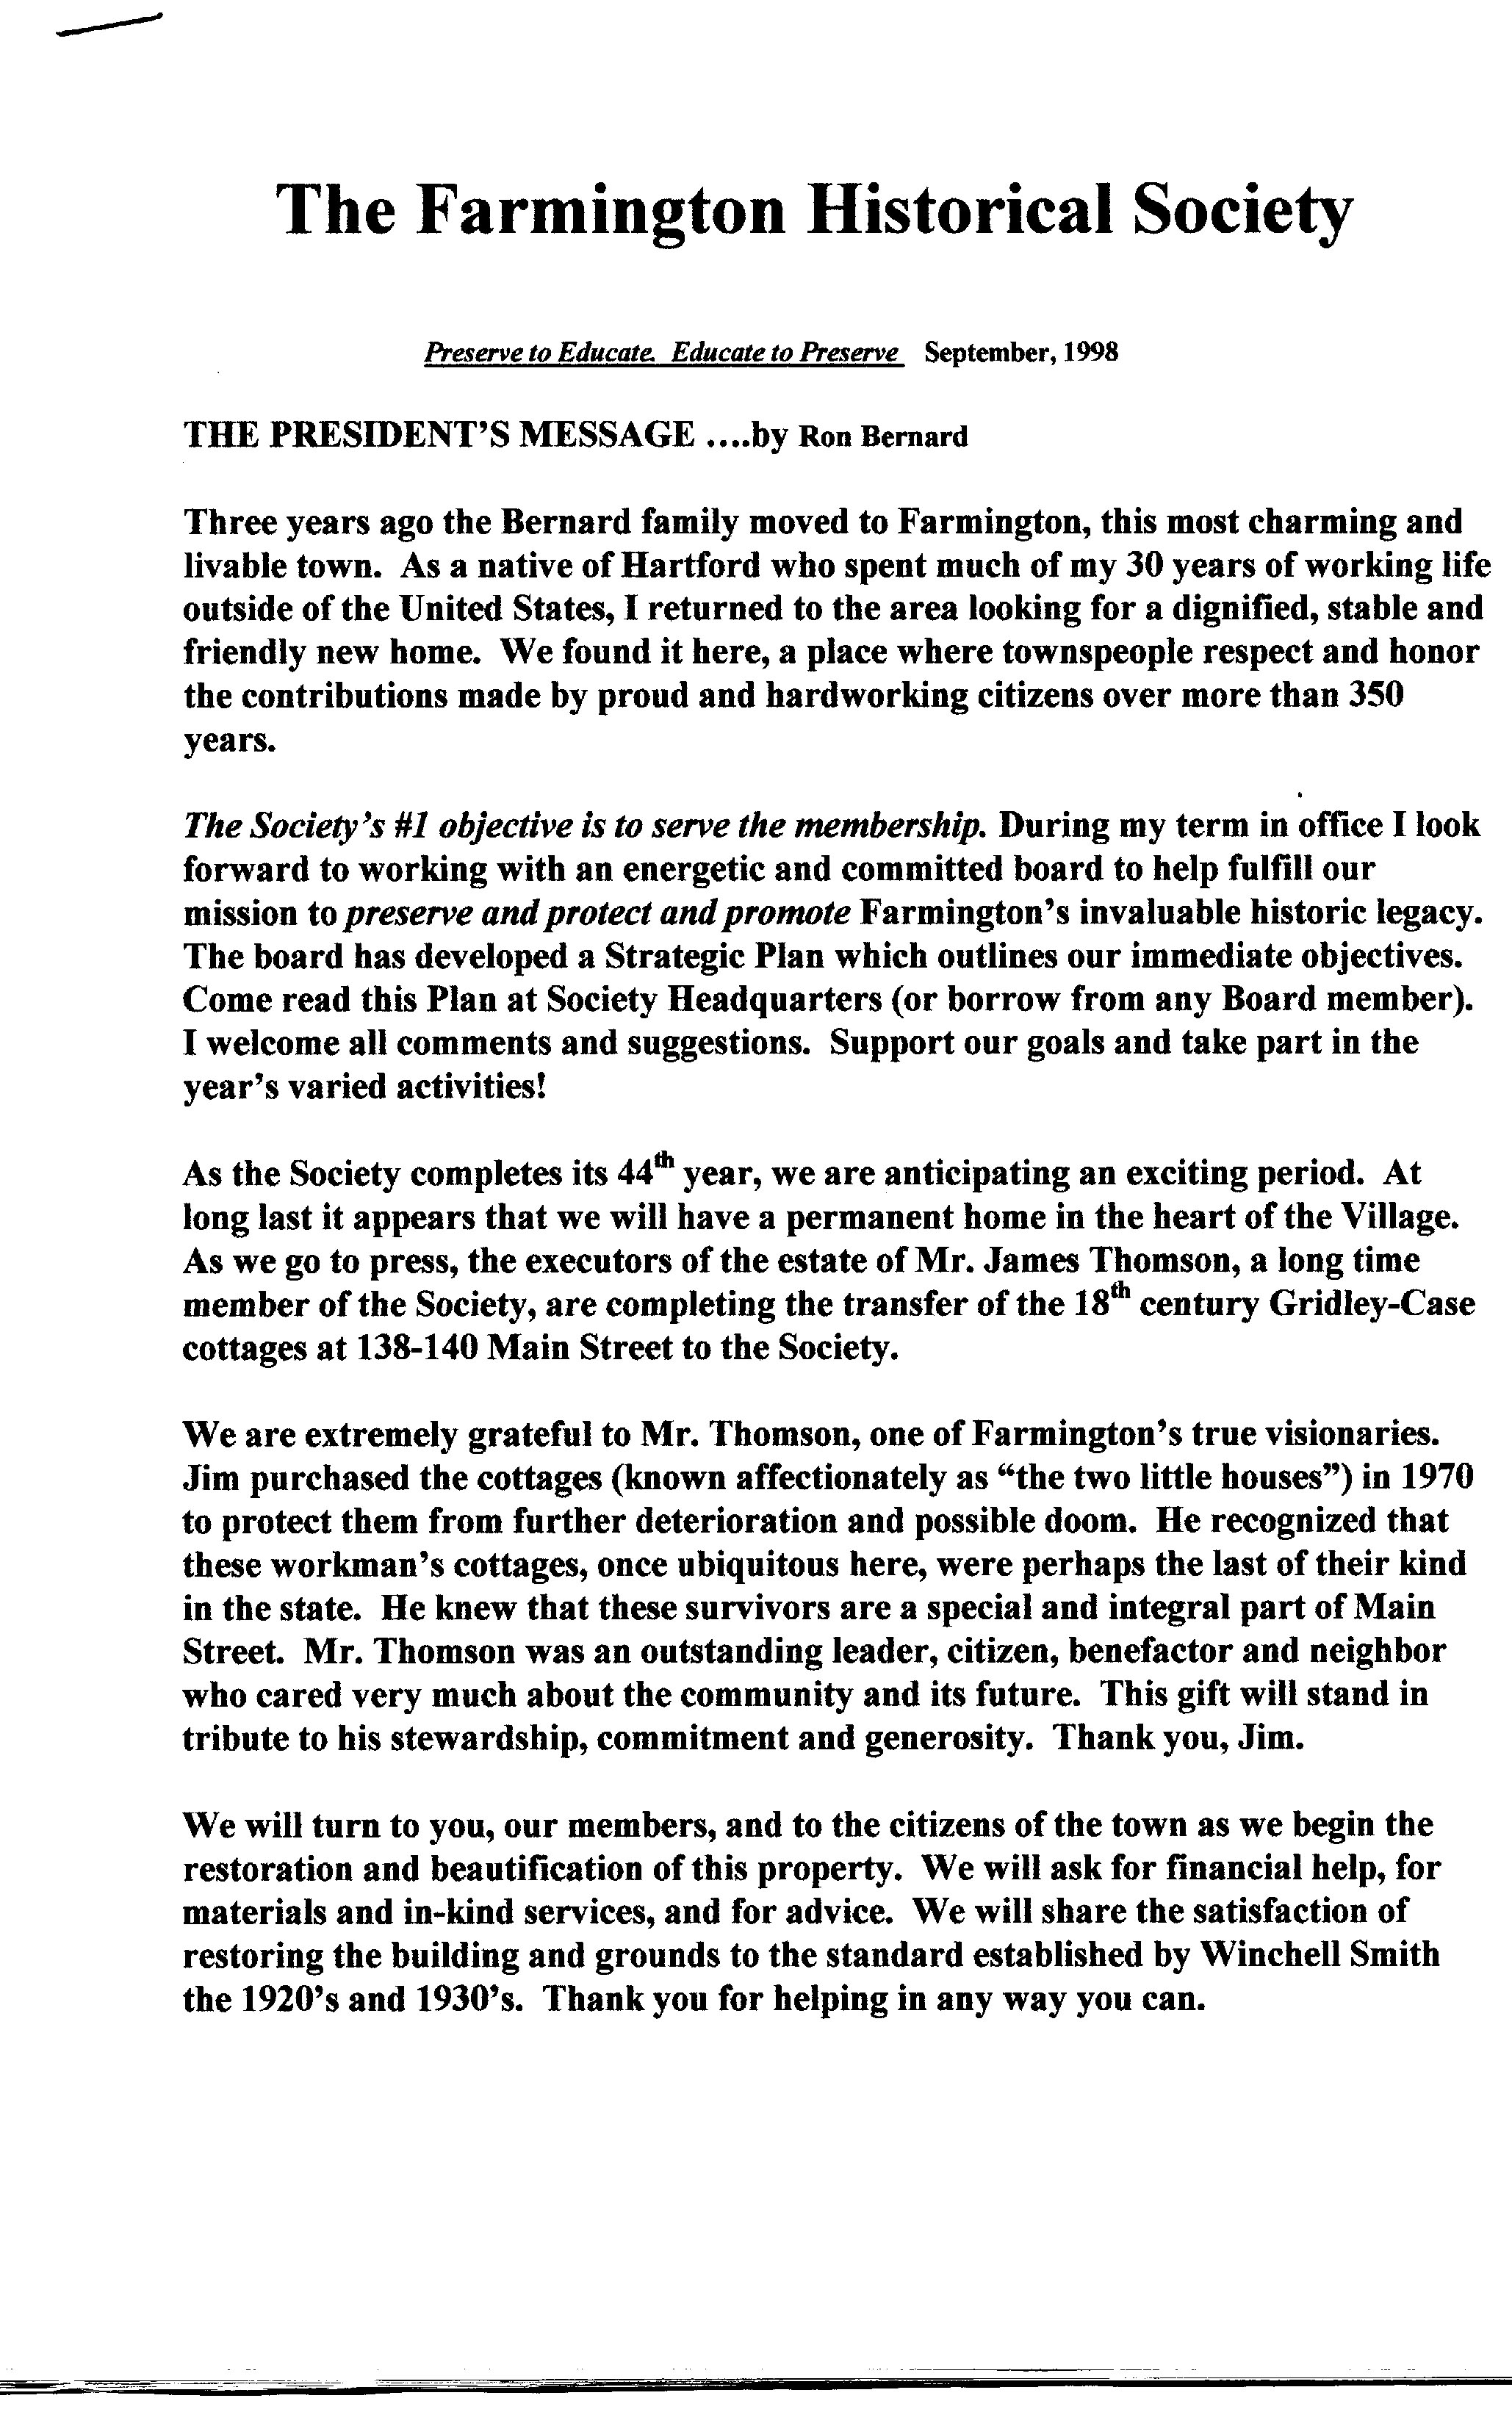 http://fhs-ct.org/1998/09/10/september-1998-newsletter-2/